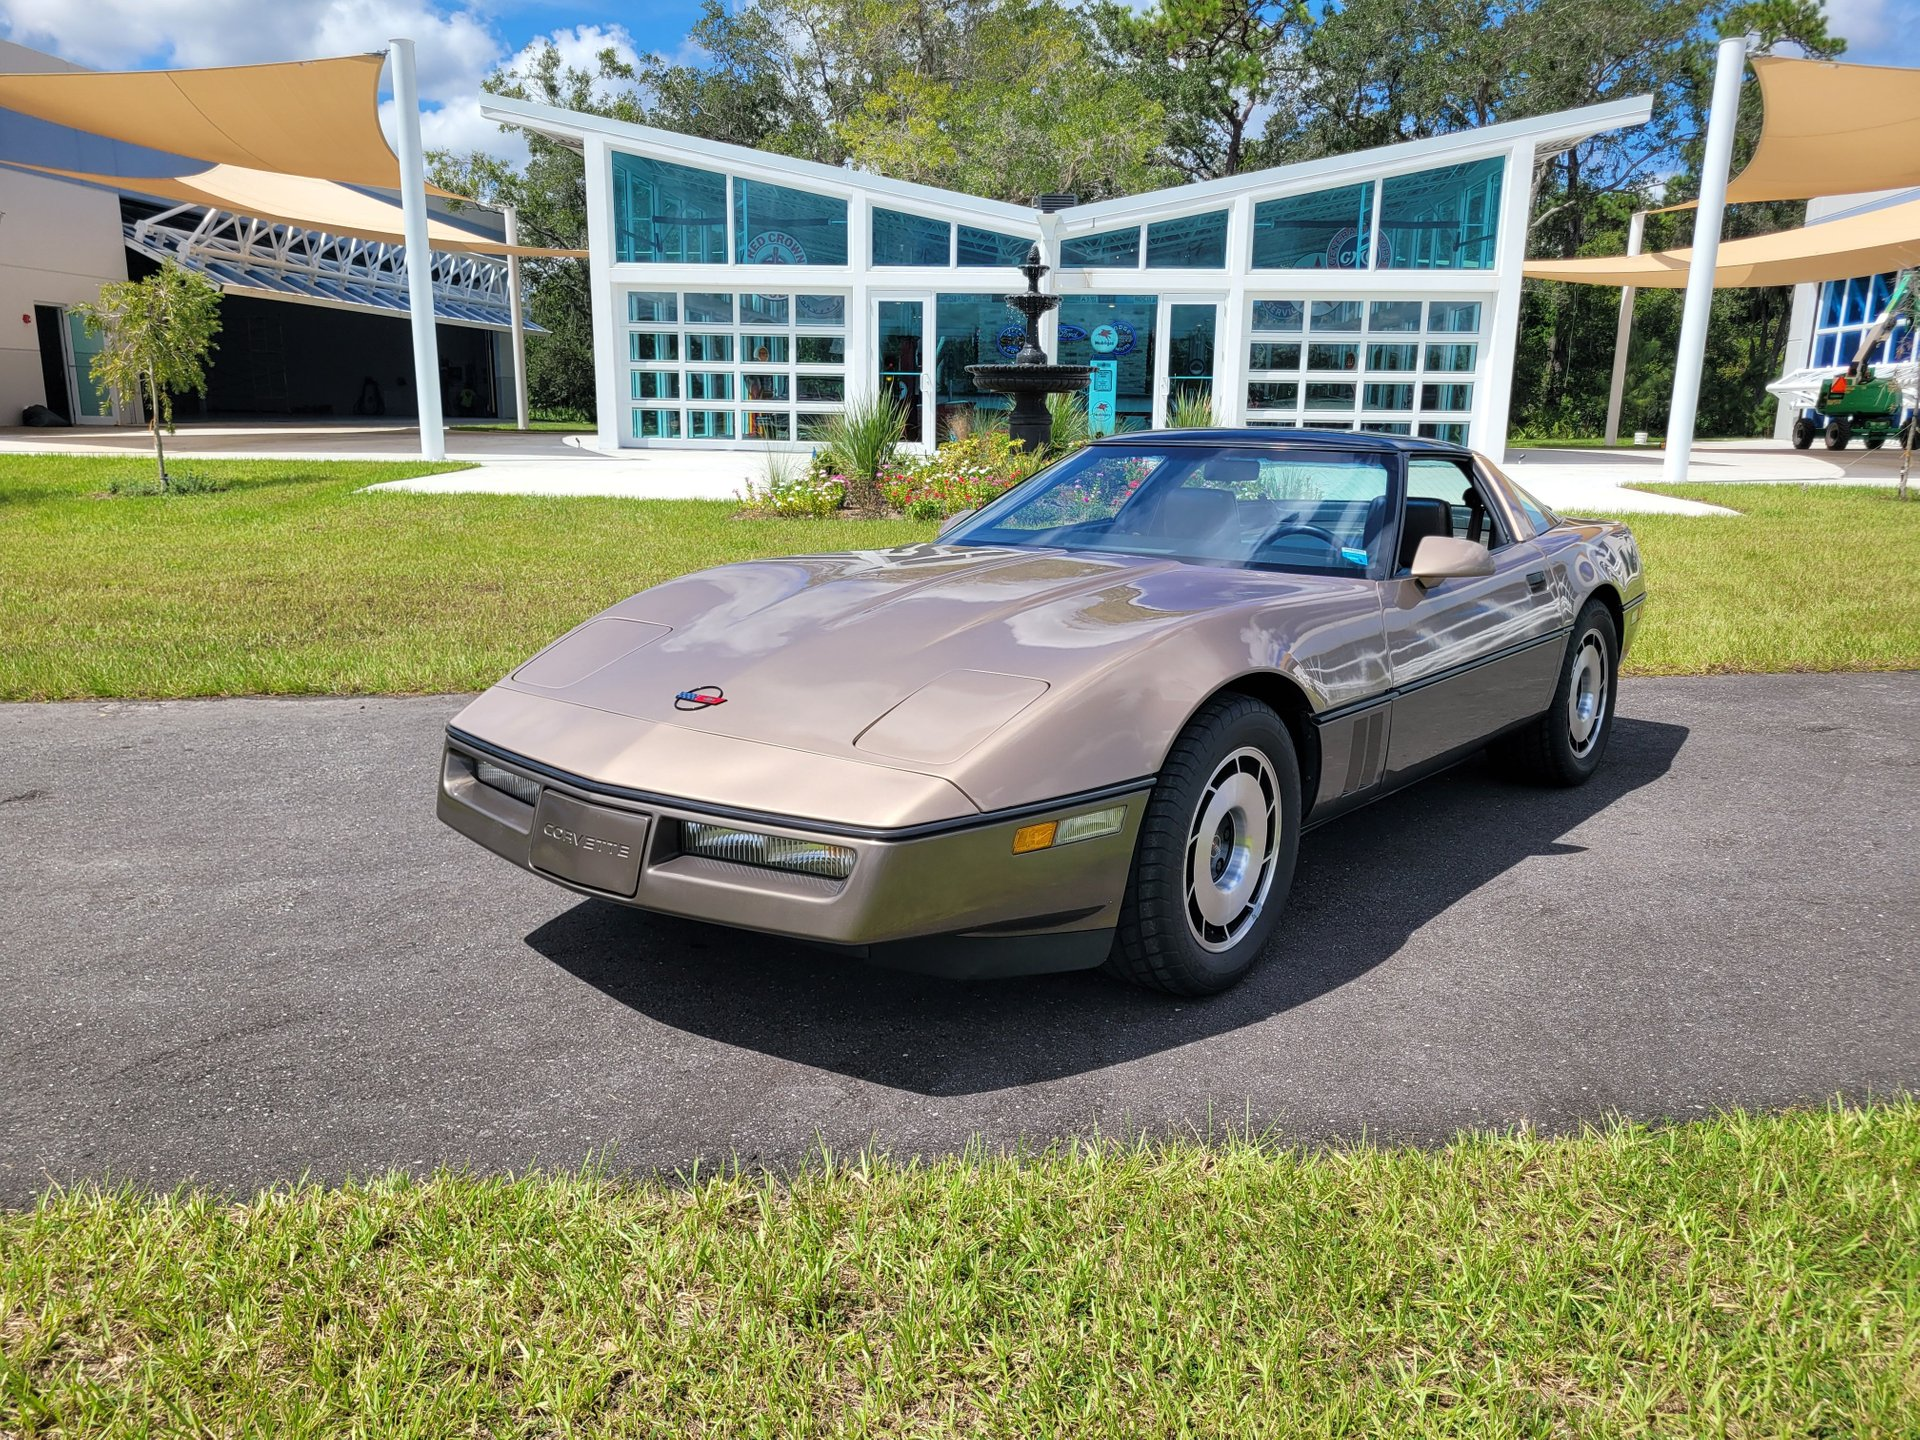 1984 chevy corvette one owner 7900 miles